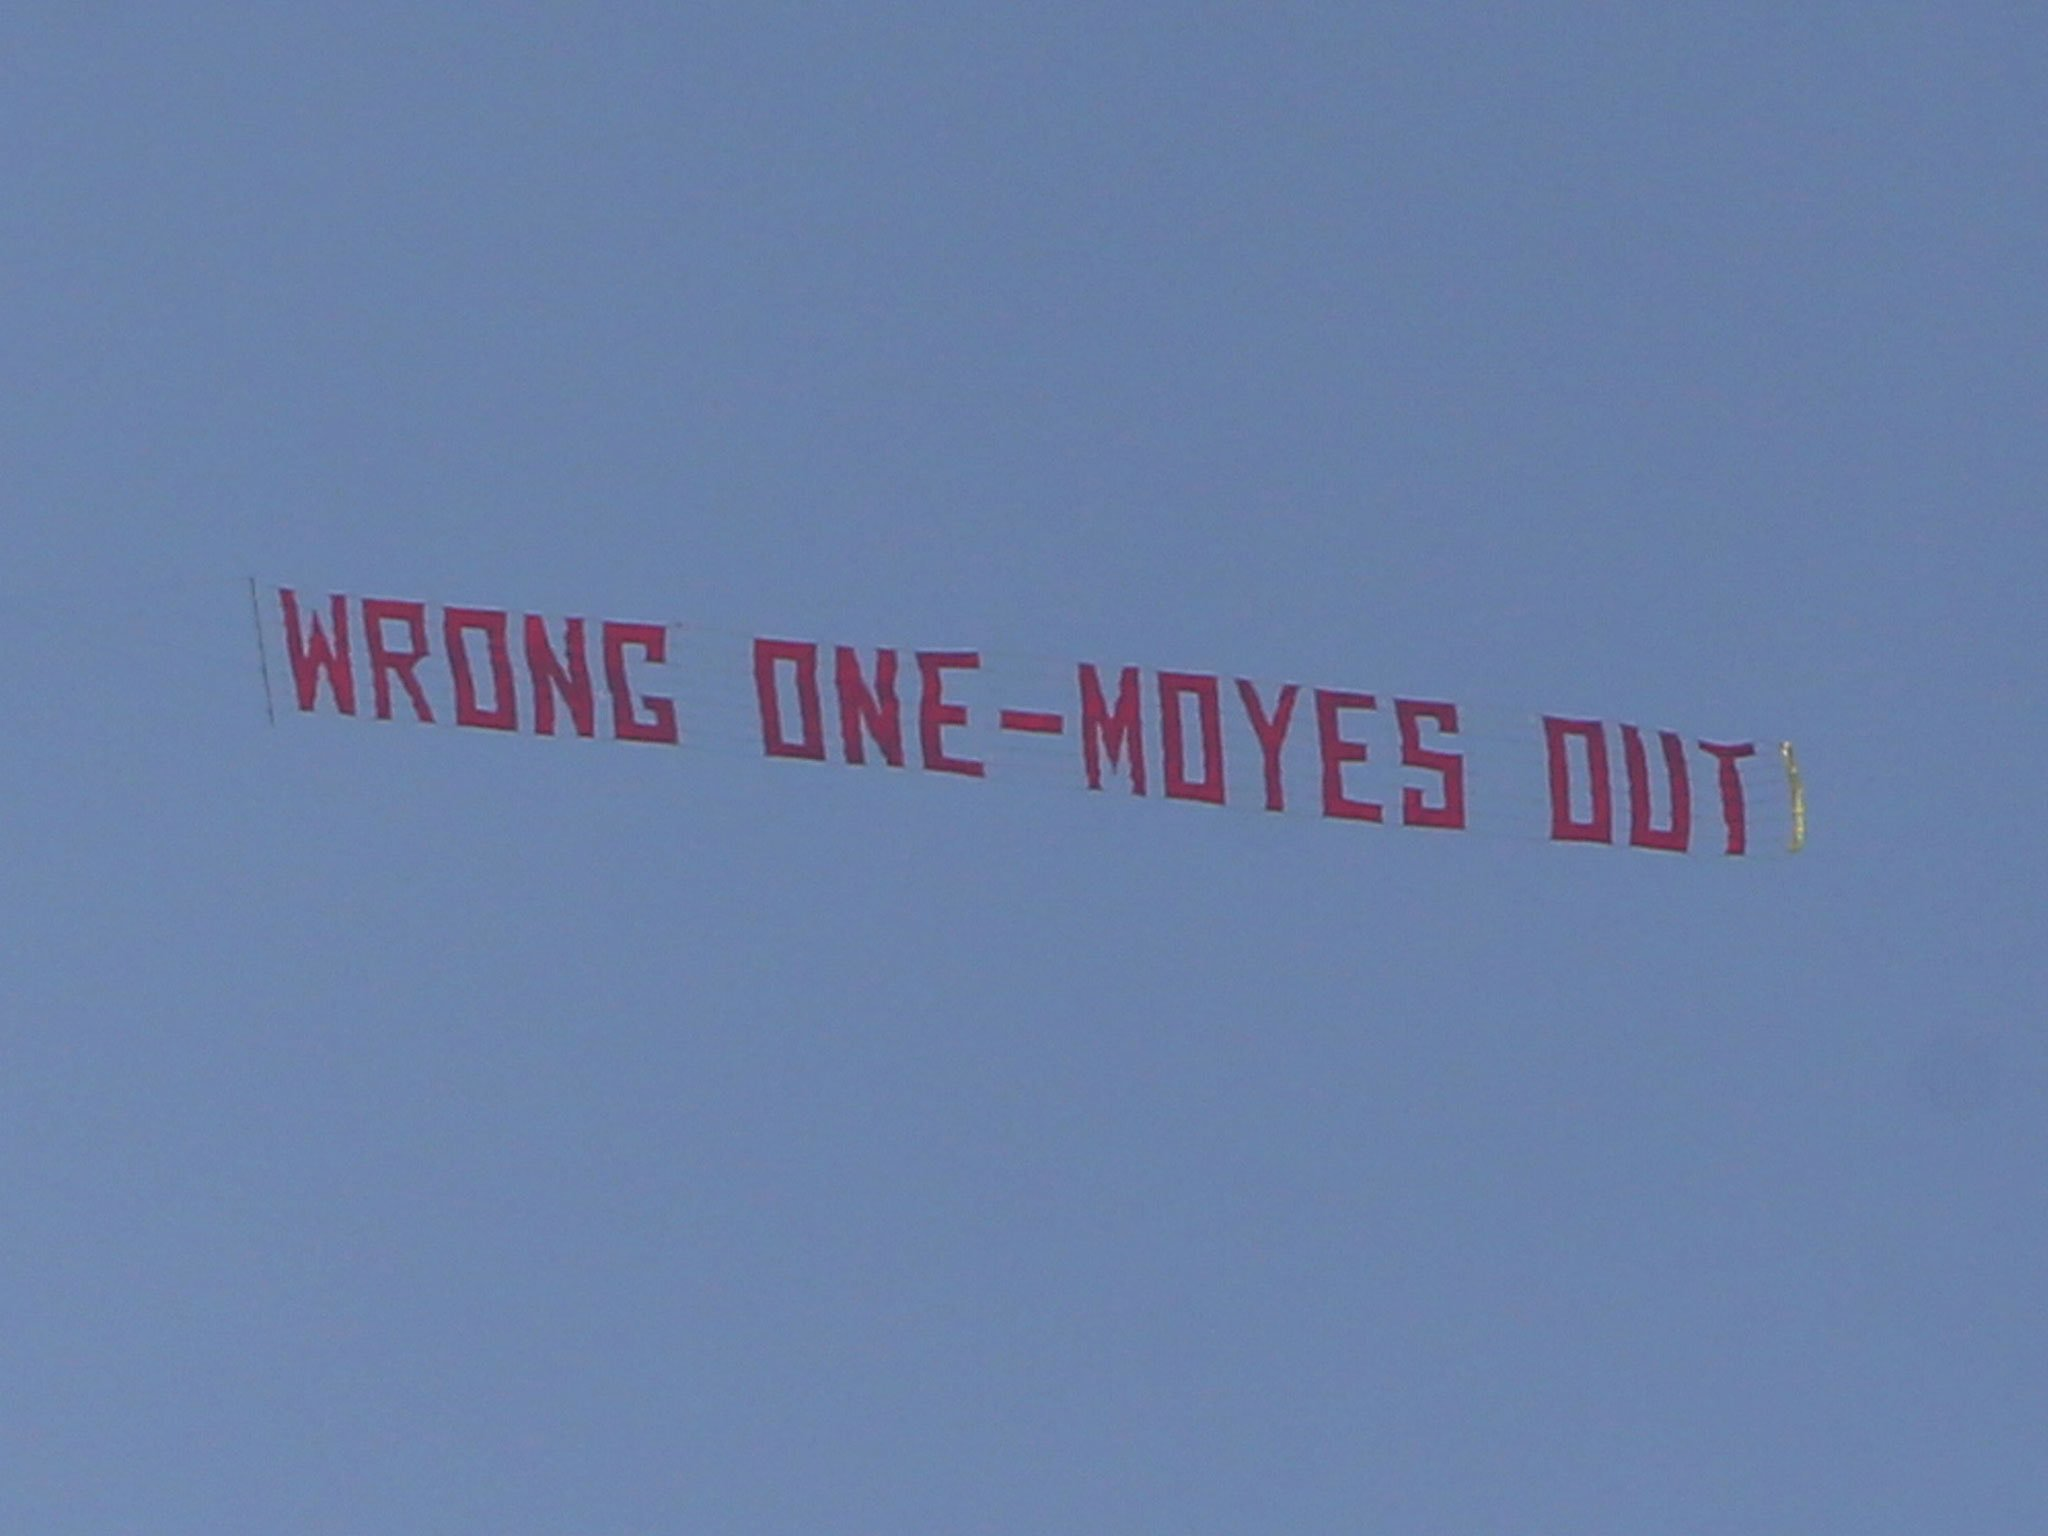 David Moyes latest. First plane spotted over Sunderland. #SAFC https://t.co/nzKVkXXdY4